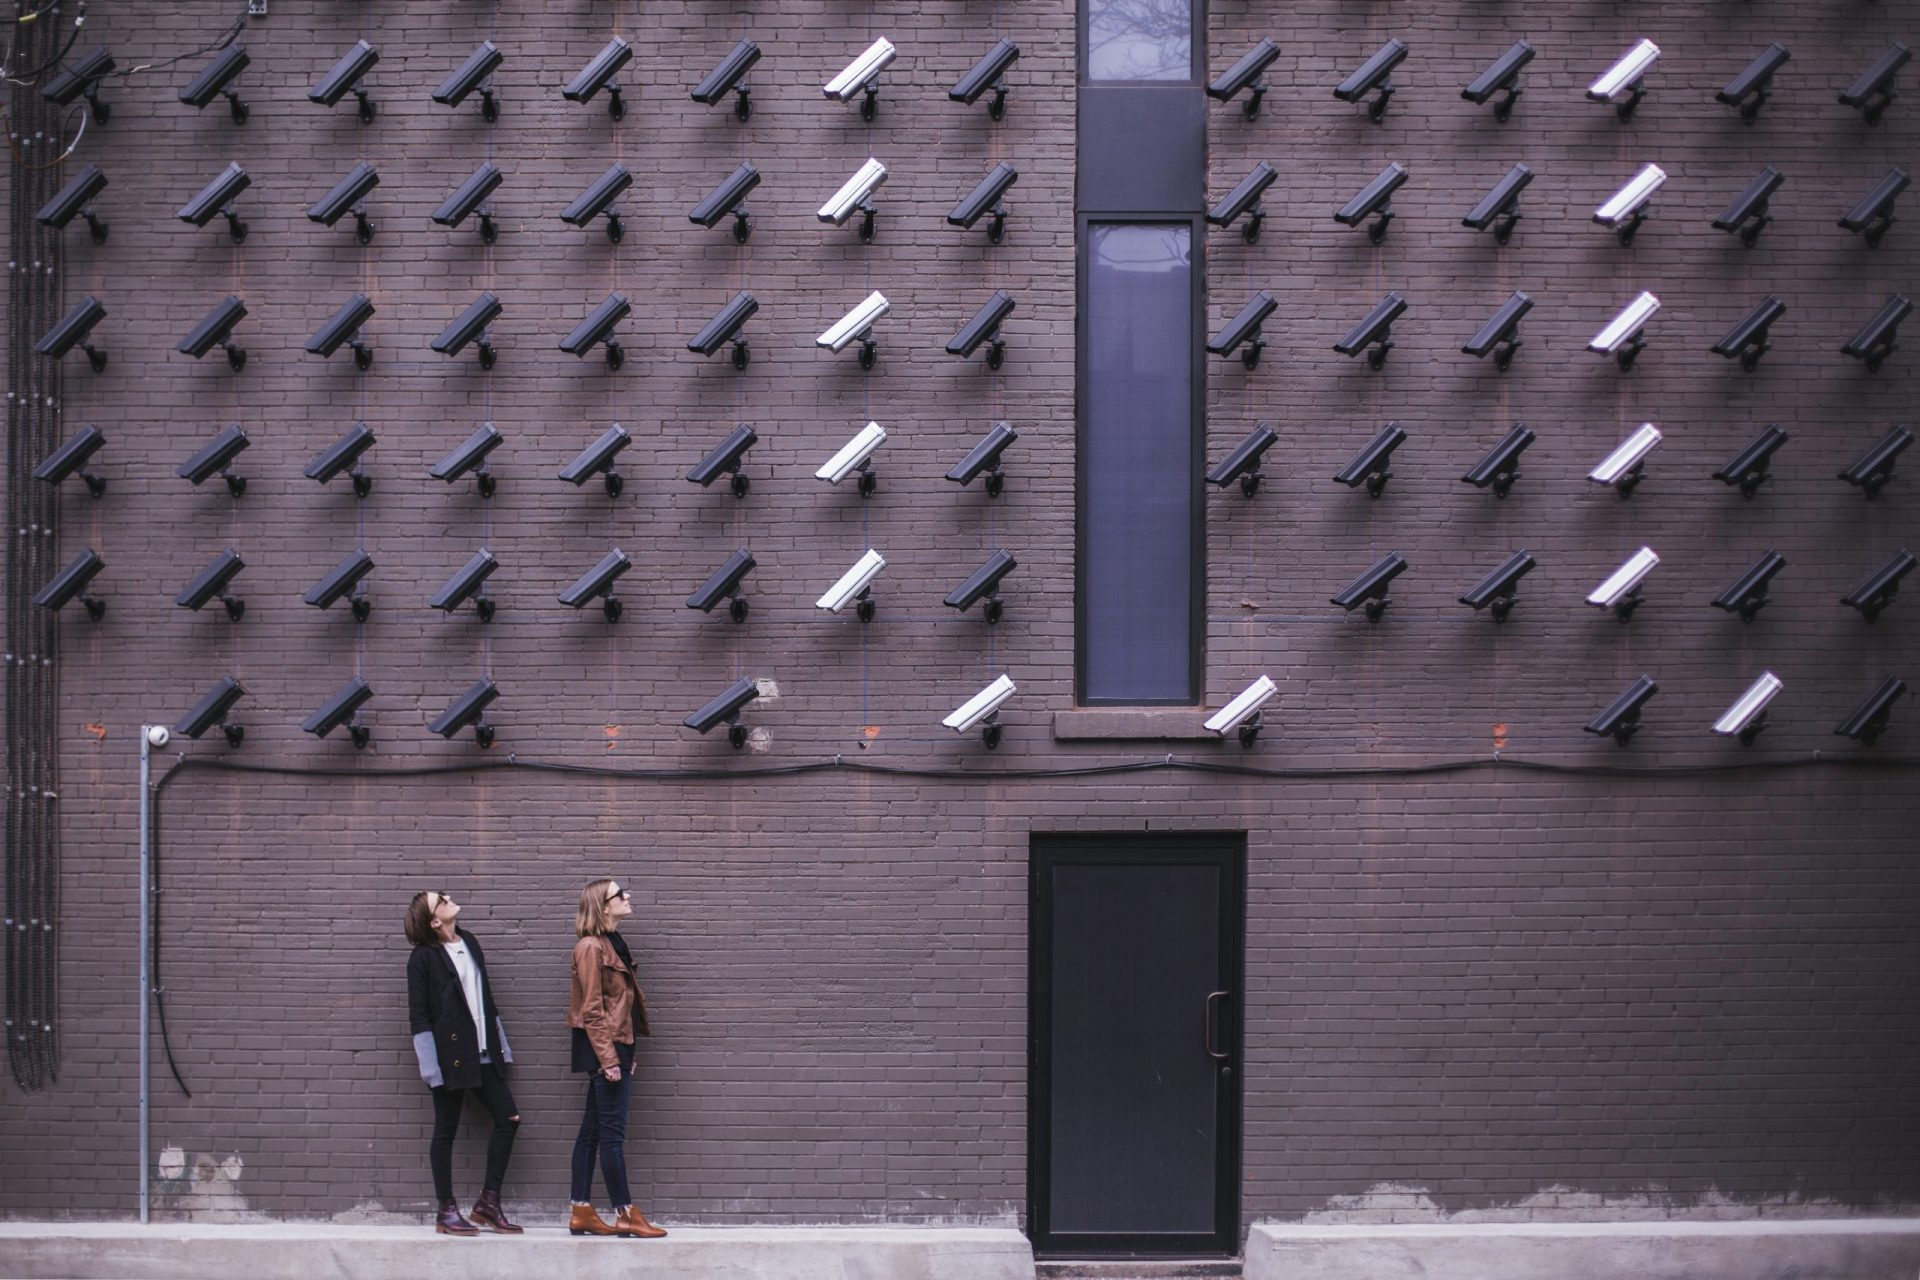 How to Monitor CCTV Camera Video on PC or MAC